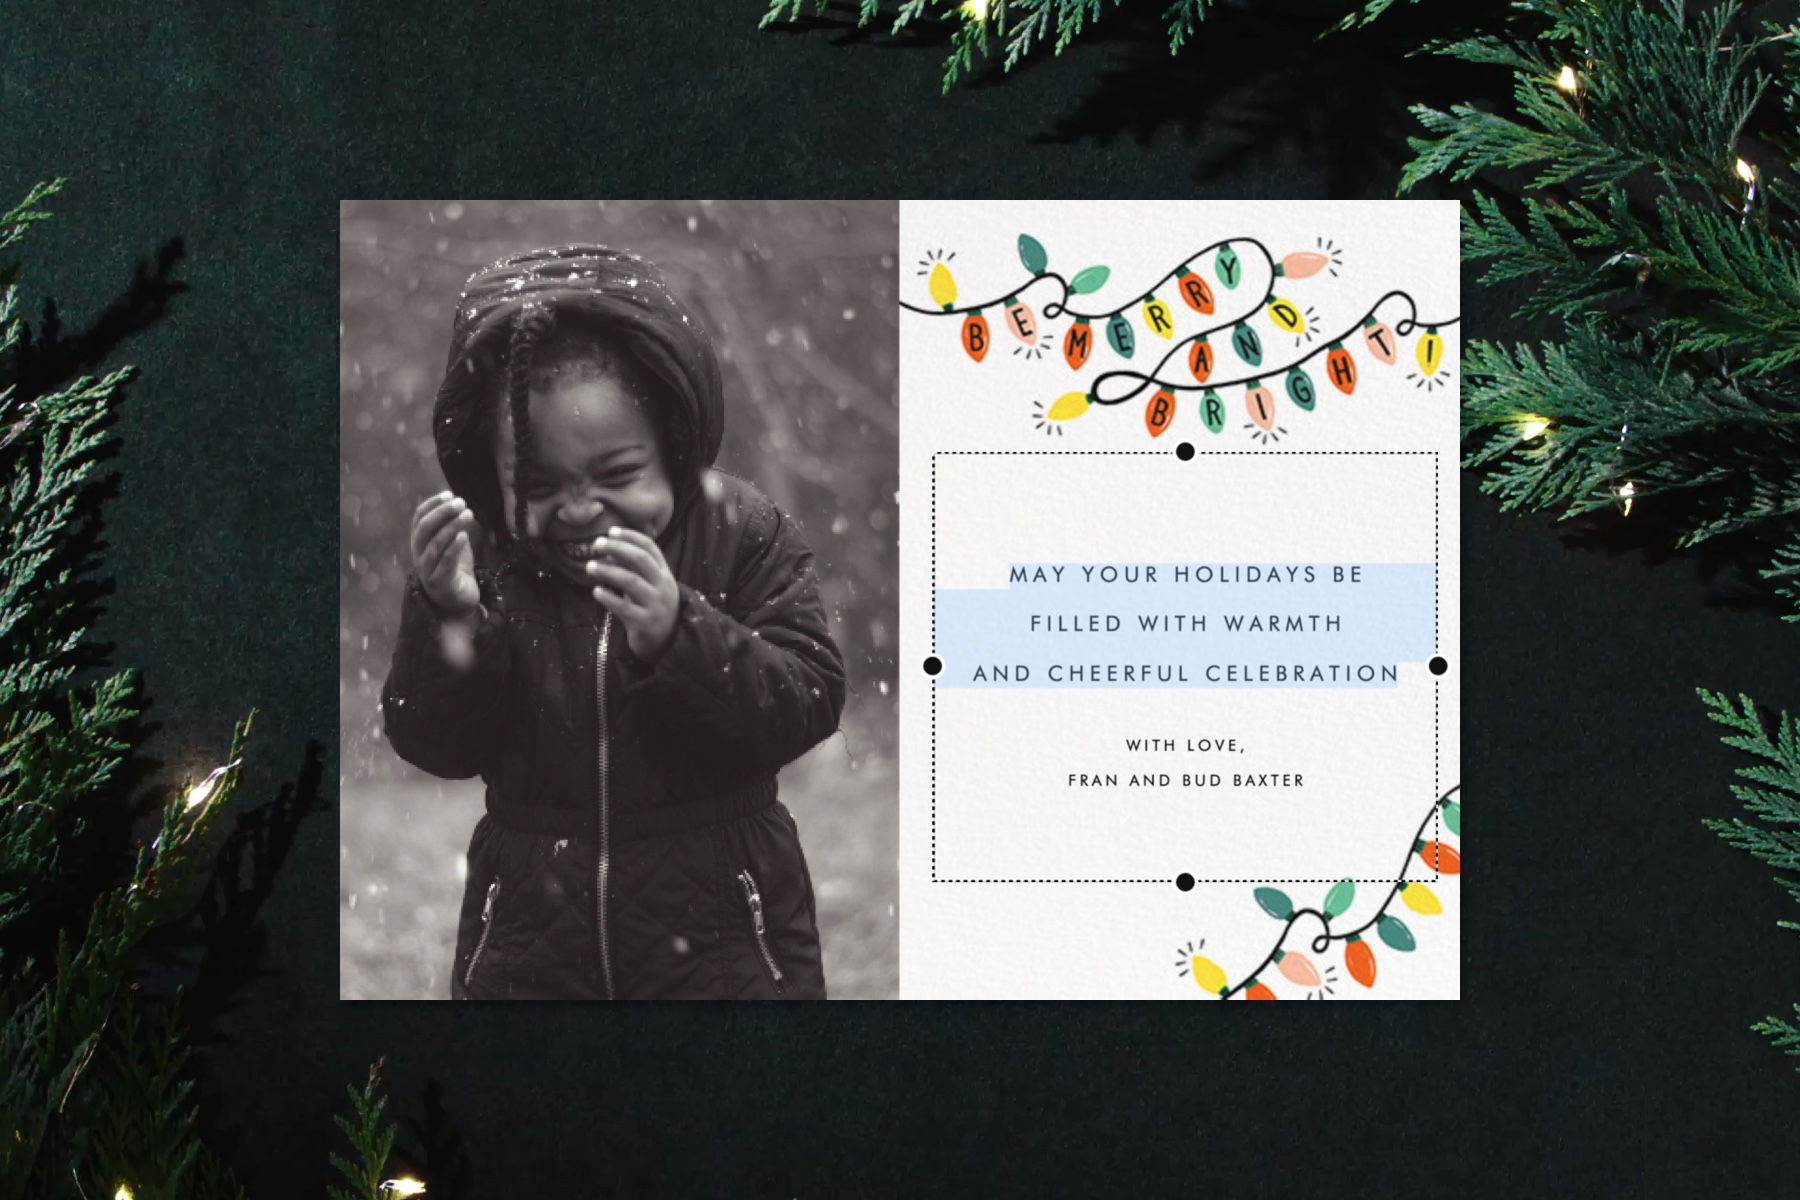 101 holiday messages and wishes to write in your holiday cards